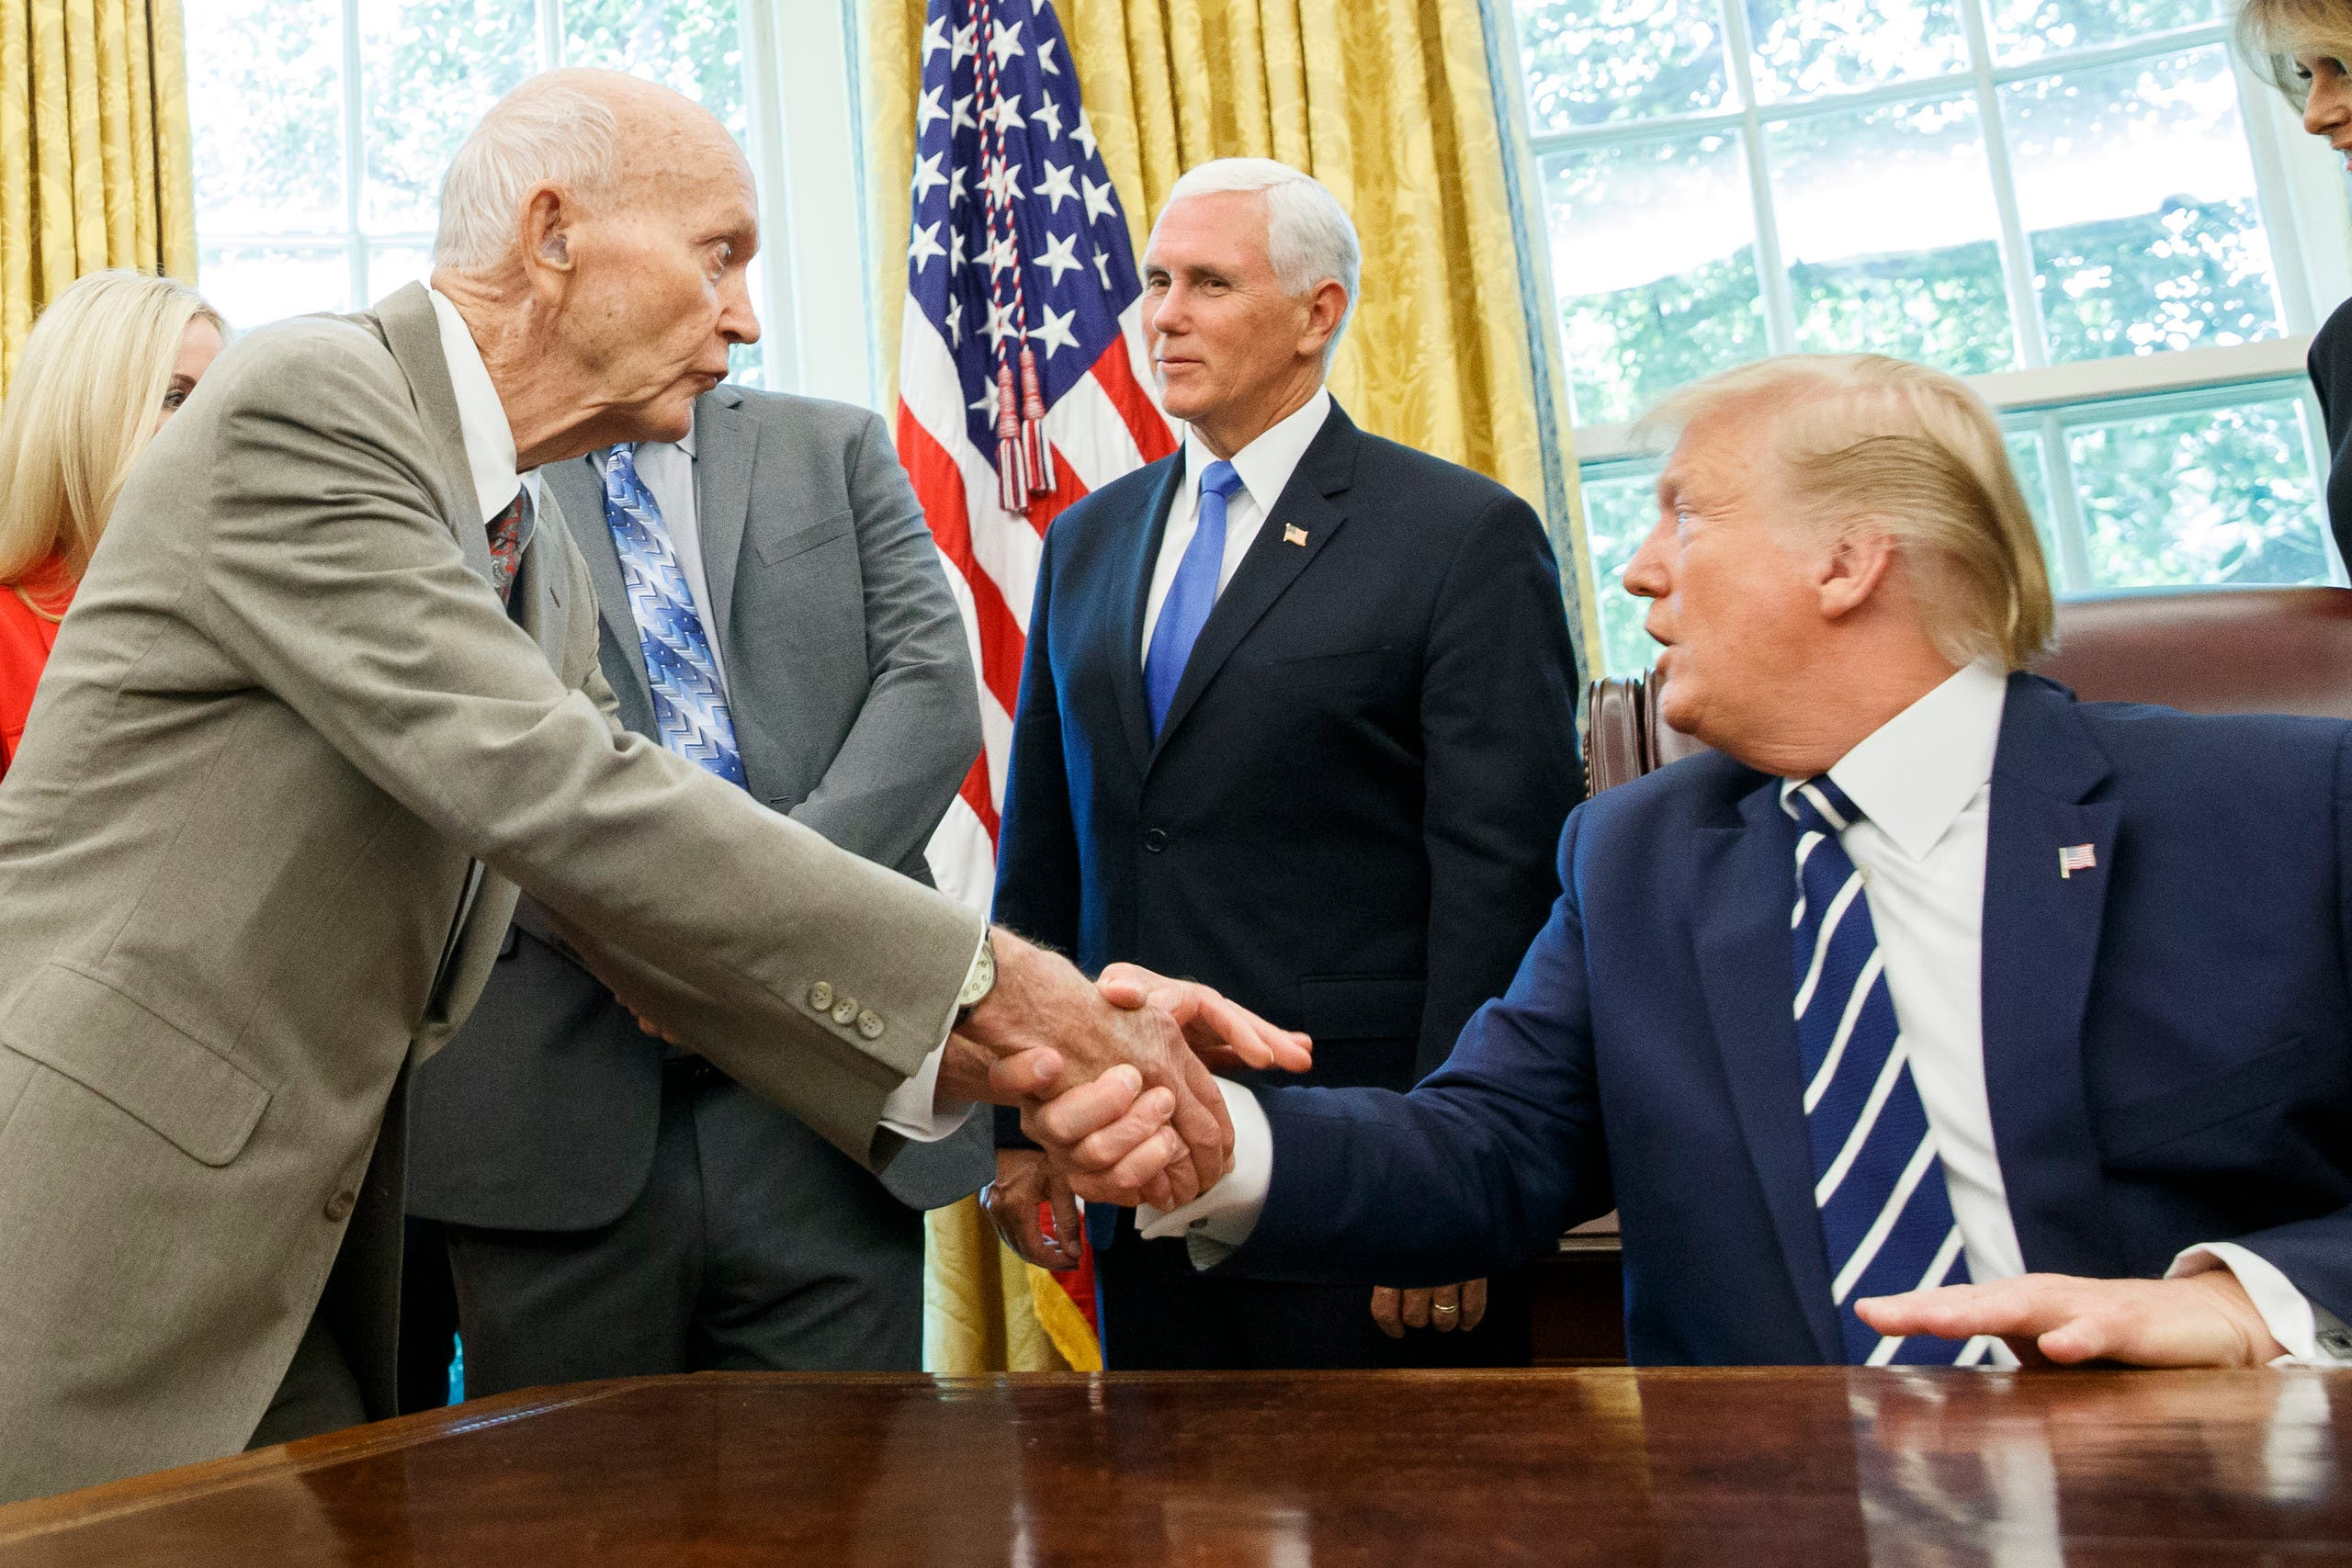 President Donald Trump shakes hands with Apollo 11 astronaut Michael Collin during a photo opportunity commemorating the 50th anniversary of the Apollo 11 moon landing. (AP)